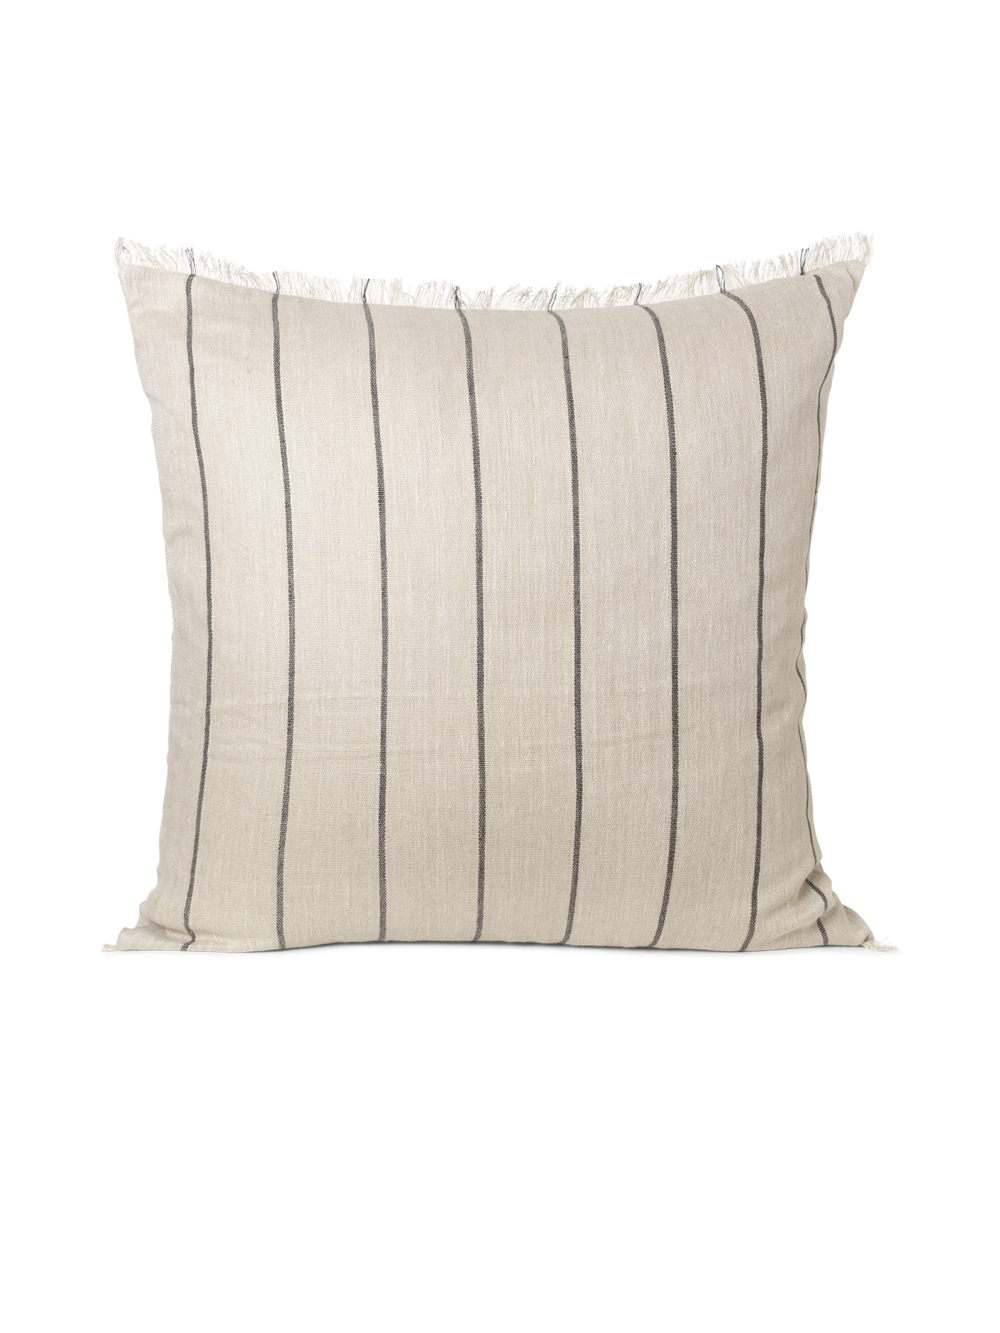 Calm Cushion - Camel/Black 80x80